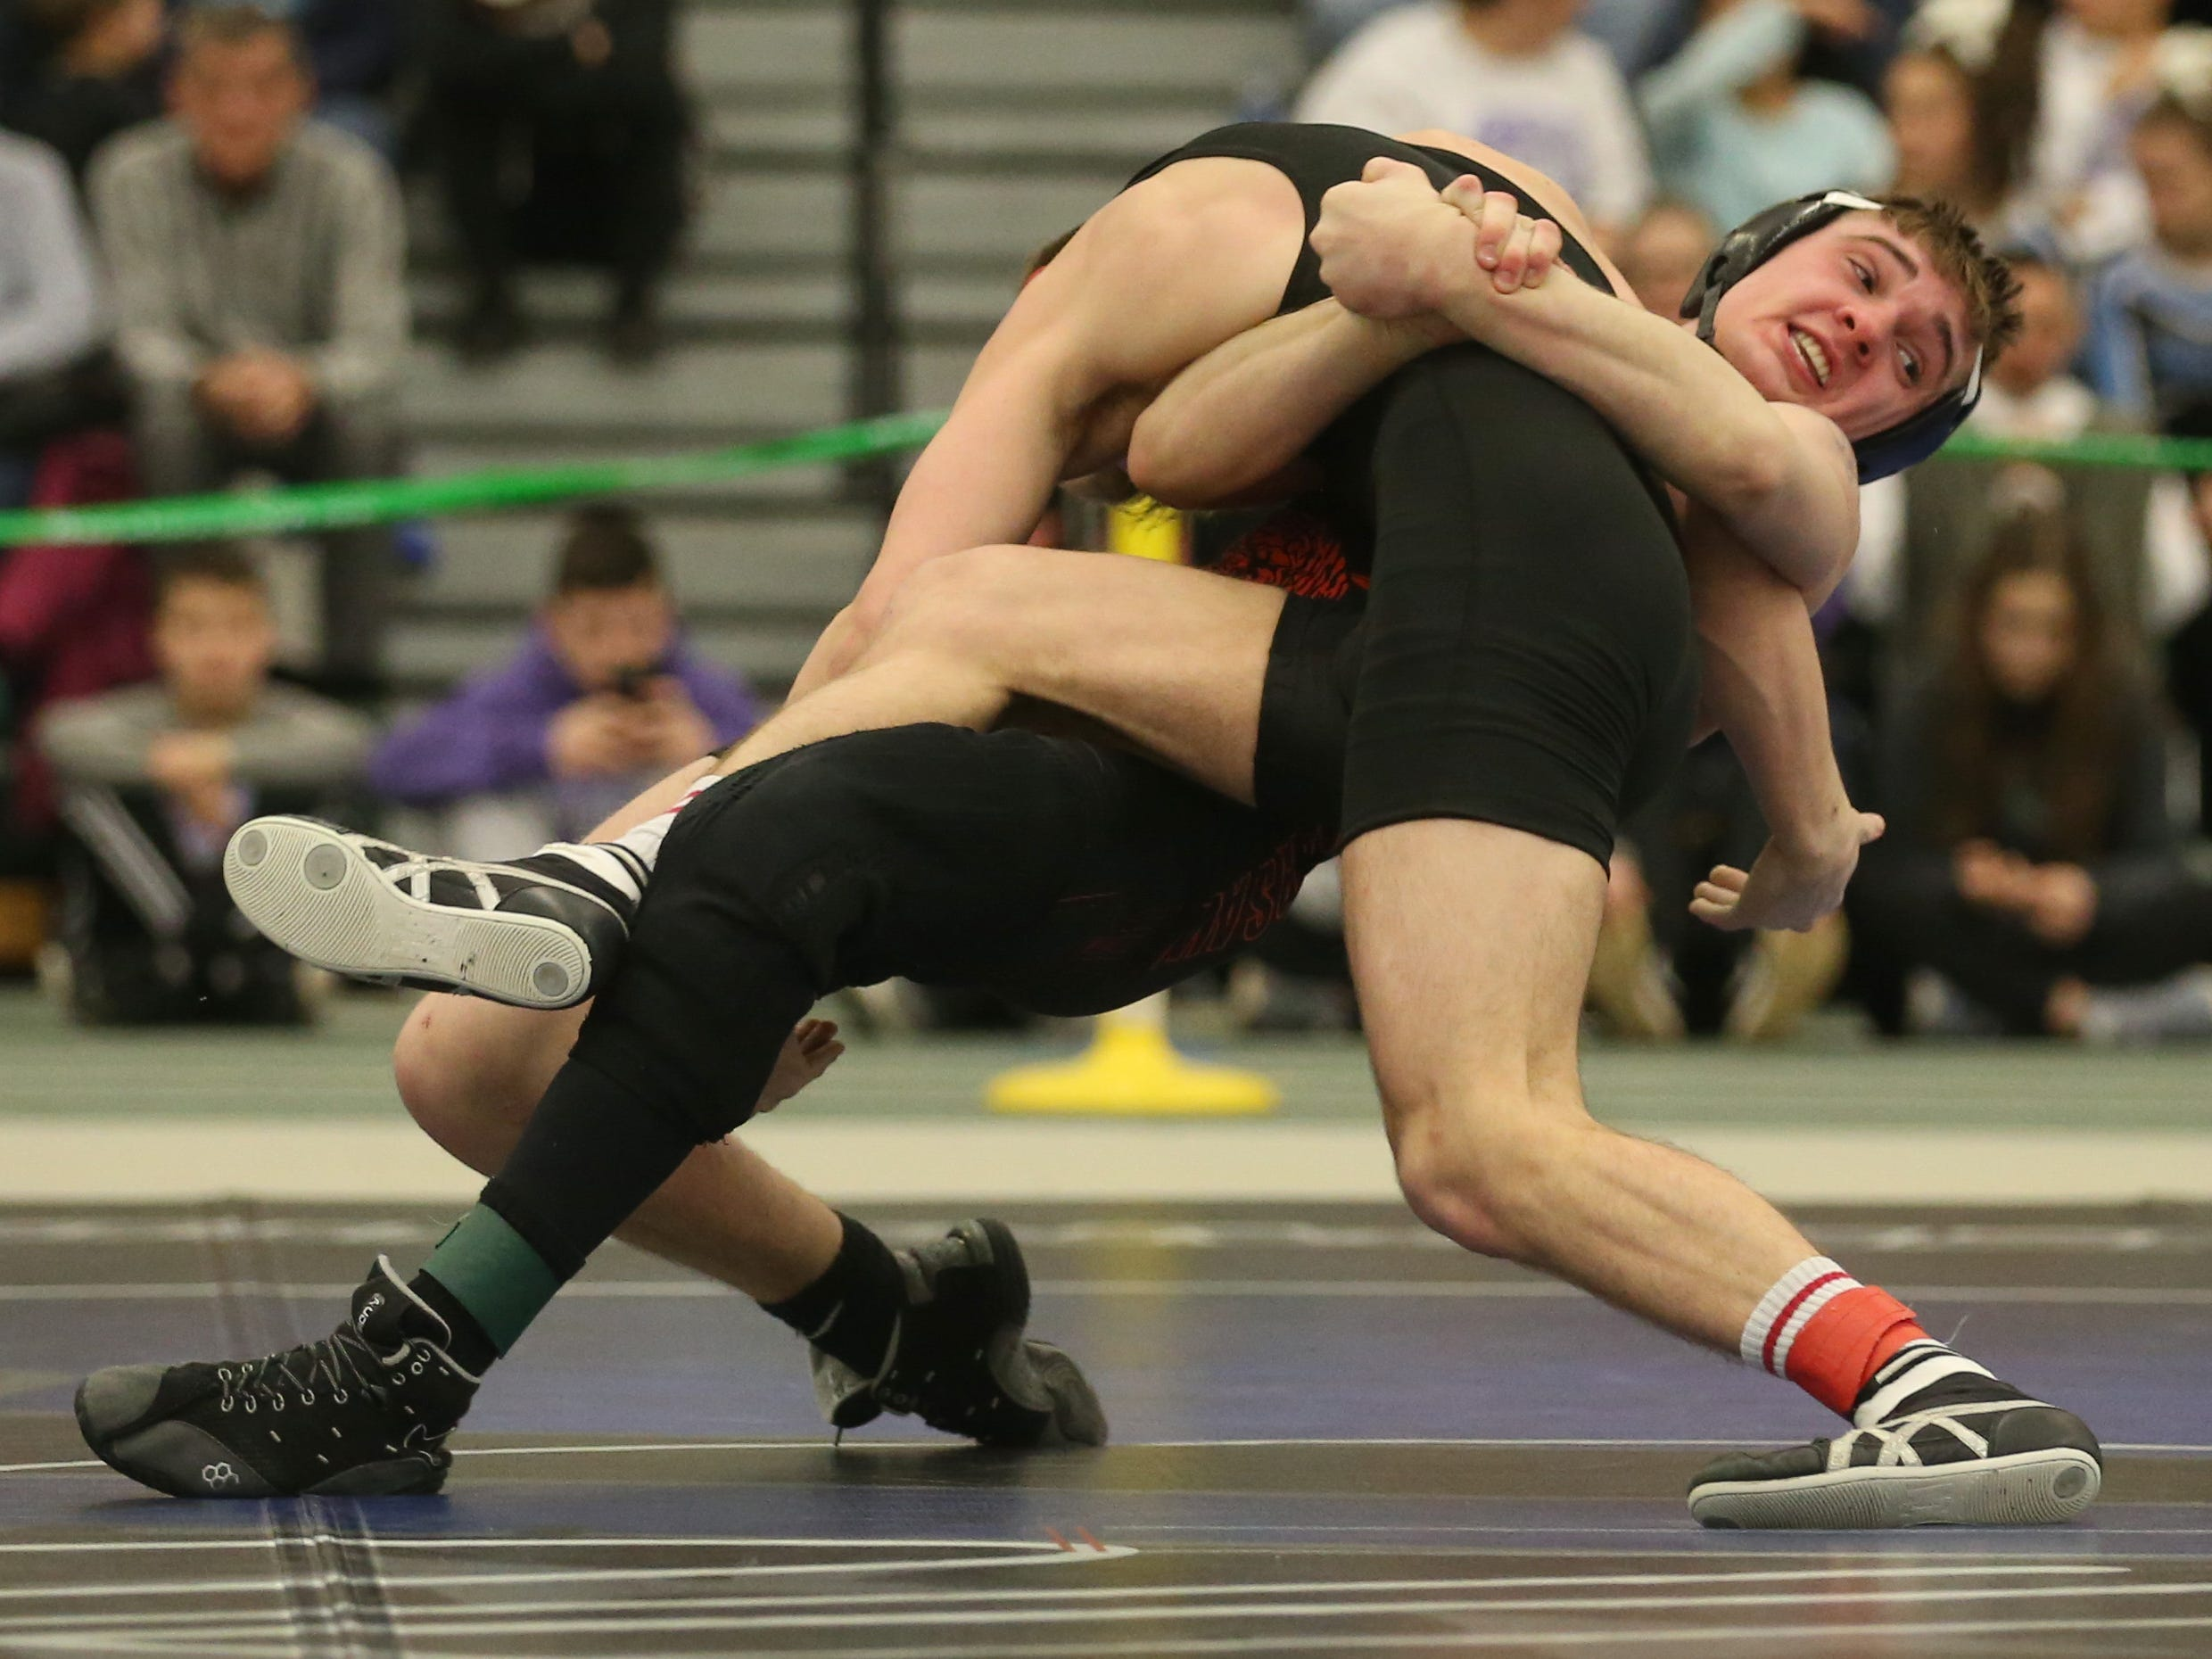 Warsaw's Nathan Murphy, right, goes for a spinning take down on Leroy's Andrew Englerth, in their Division 2, 138 pound match at the 52nd Annual State Wrestling Qualifier at the College at Brockport Saturday, Feb. 9, 2019.